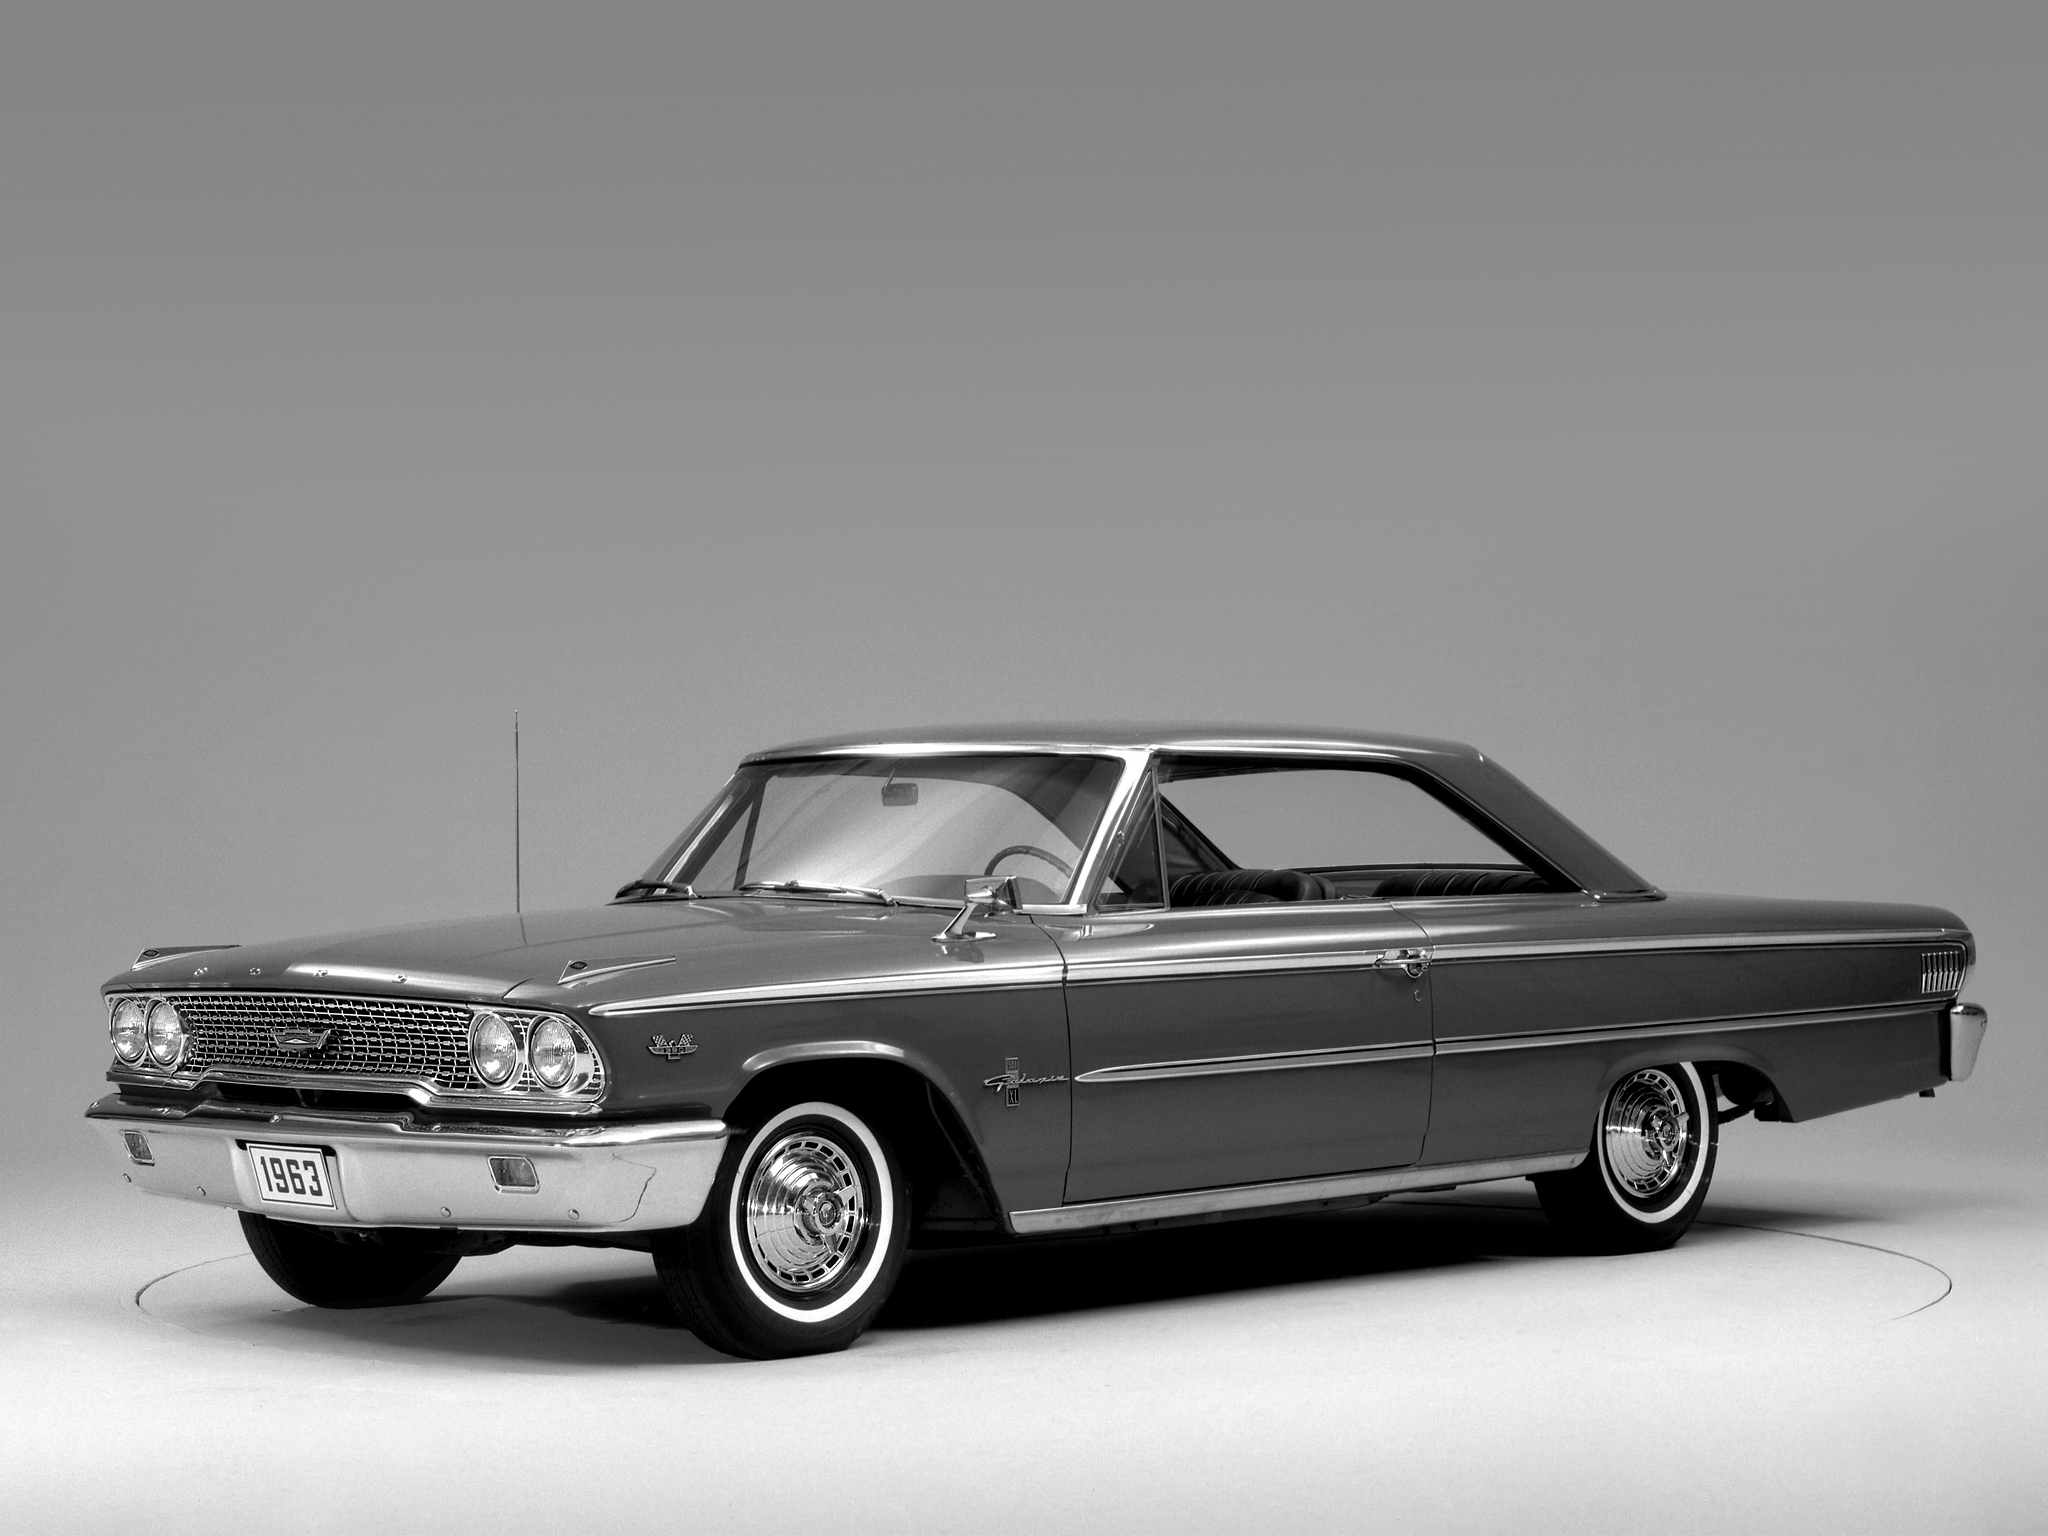 1963 ford galaxie 500 x l hardtop coupe classic wallpaper background